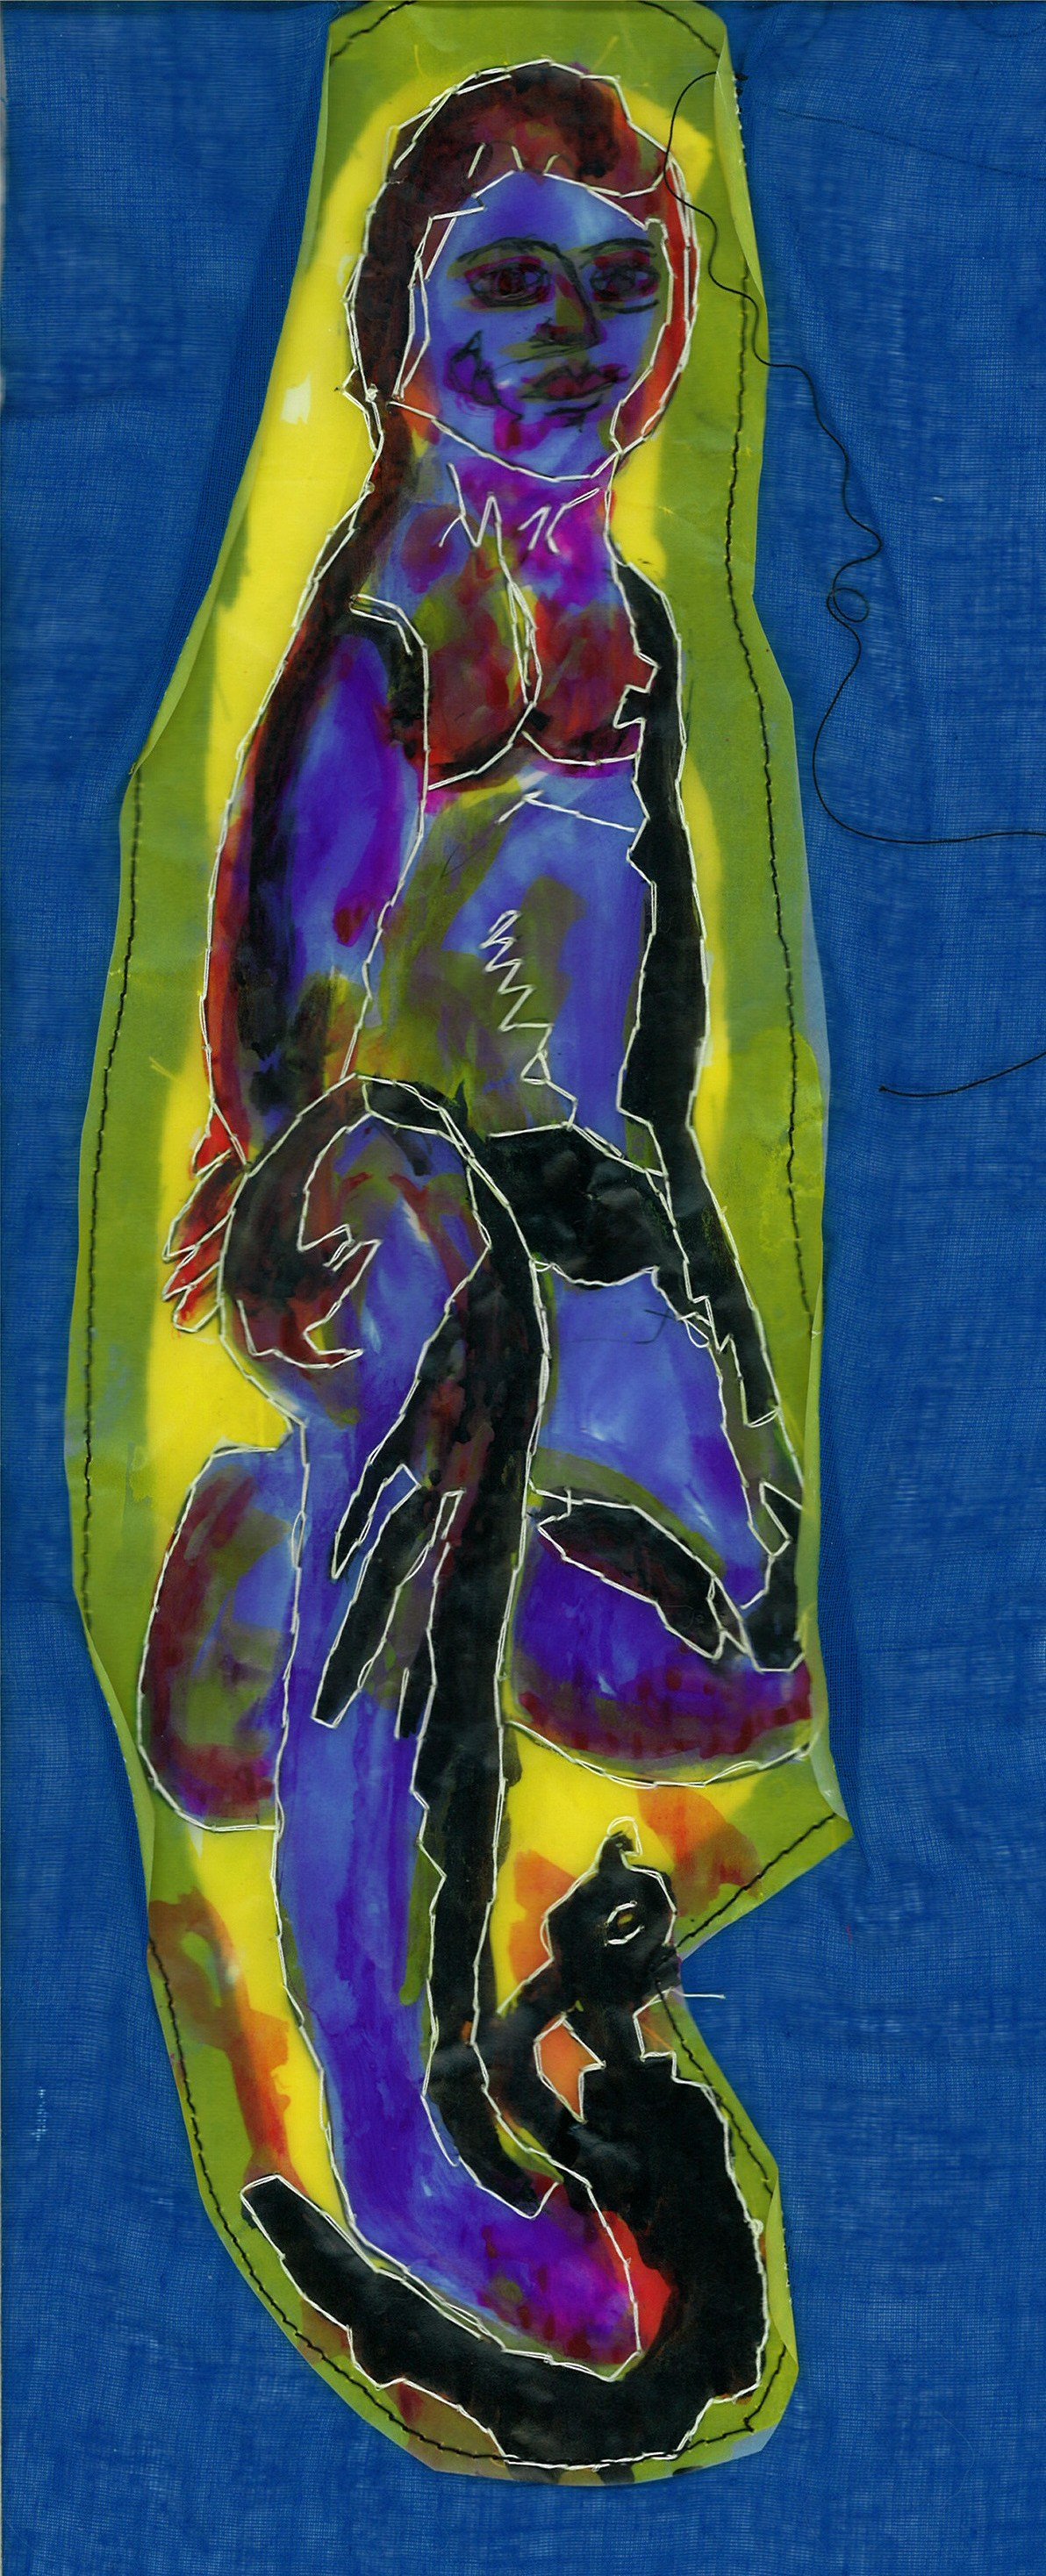 4462    625    The Freedom Series 4    If you intend to put this work up for sale    NULL